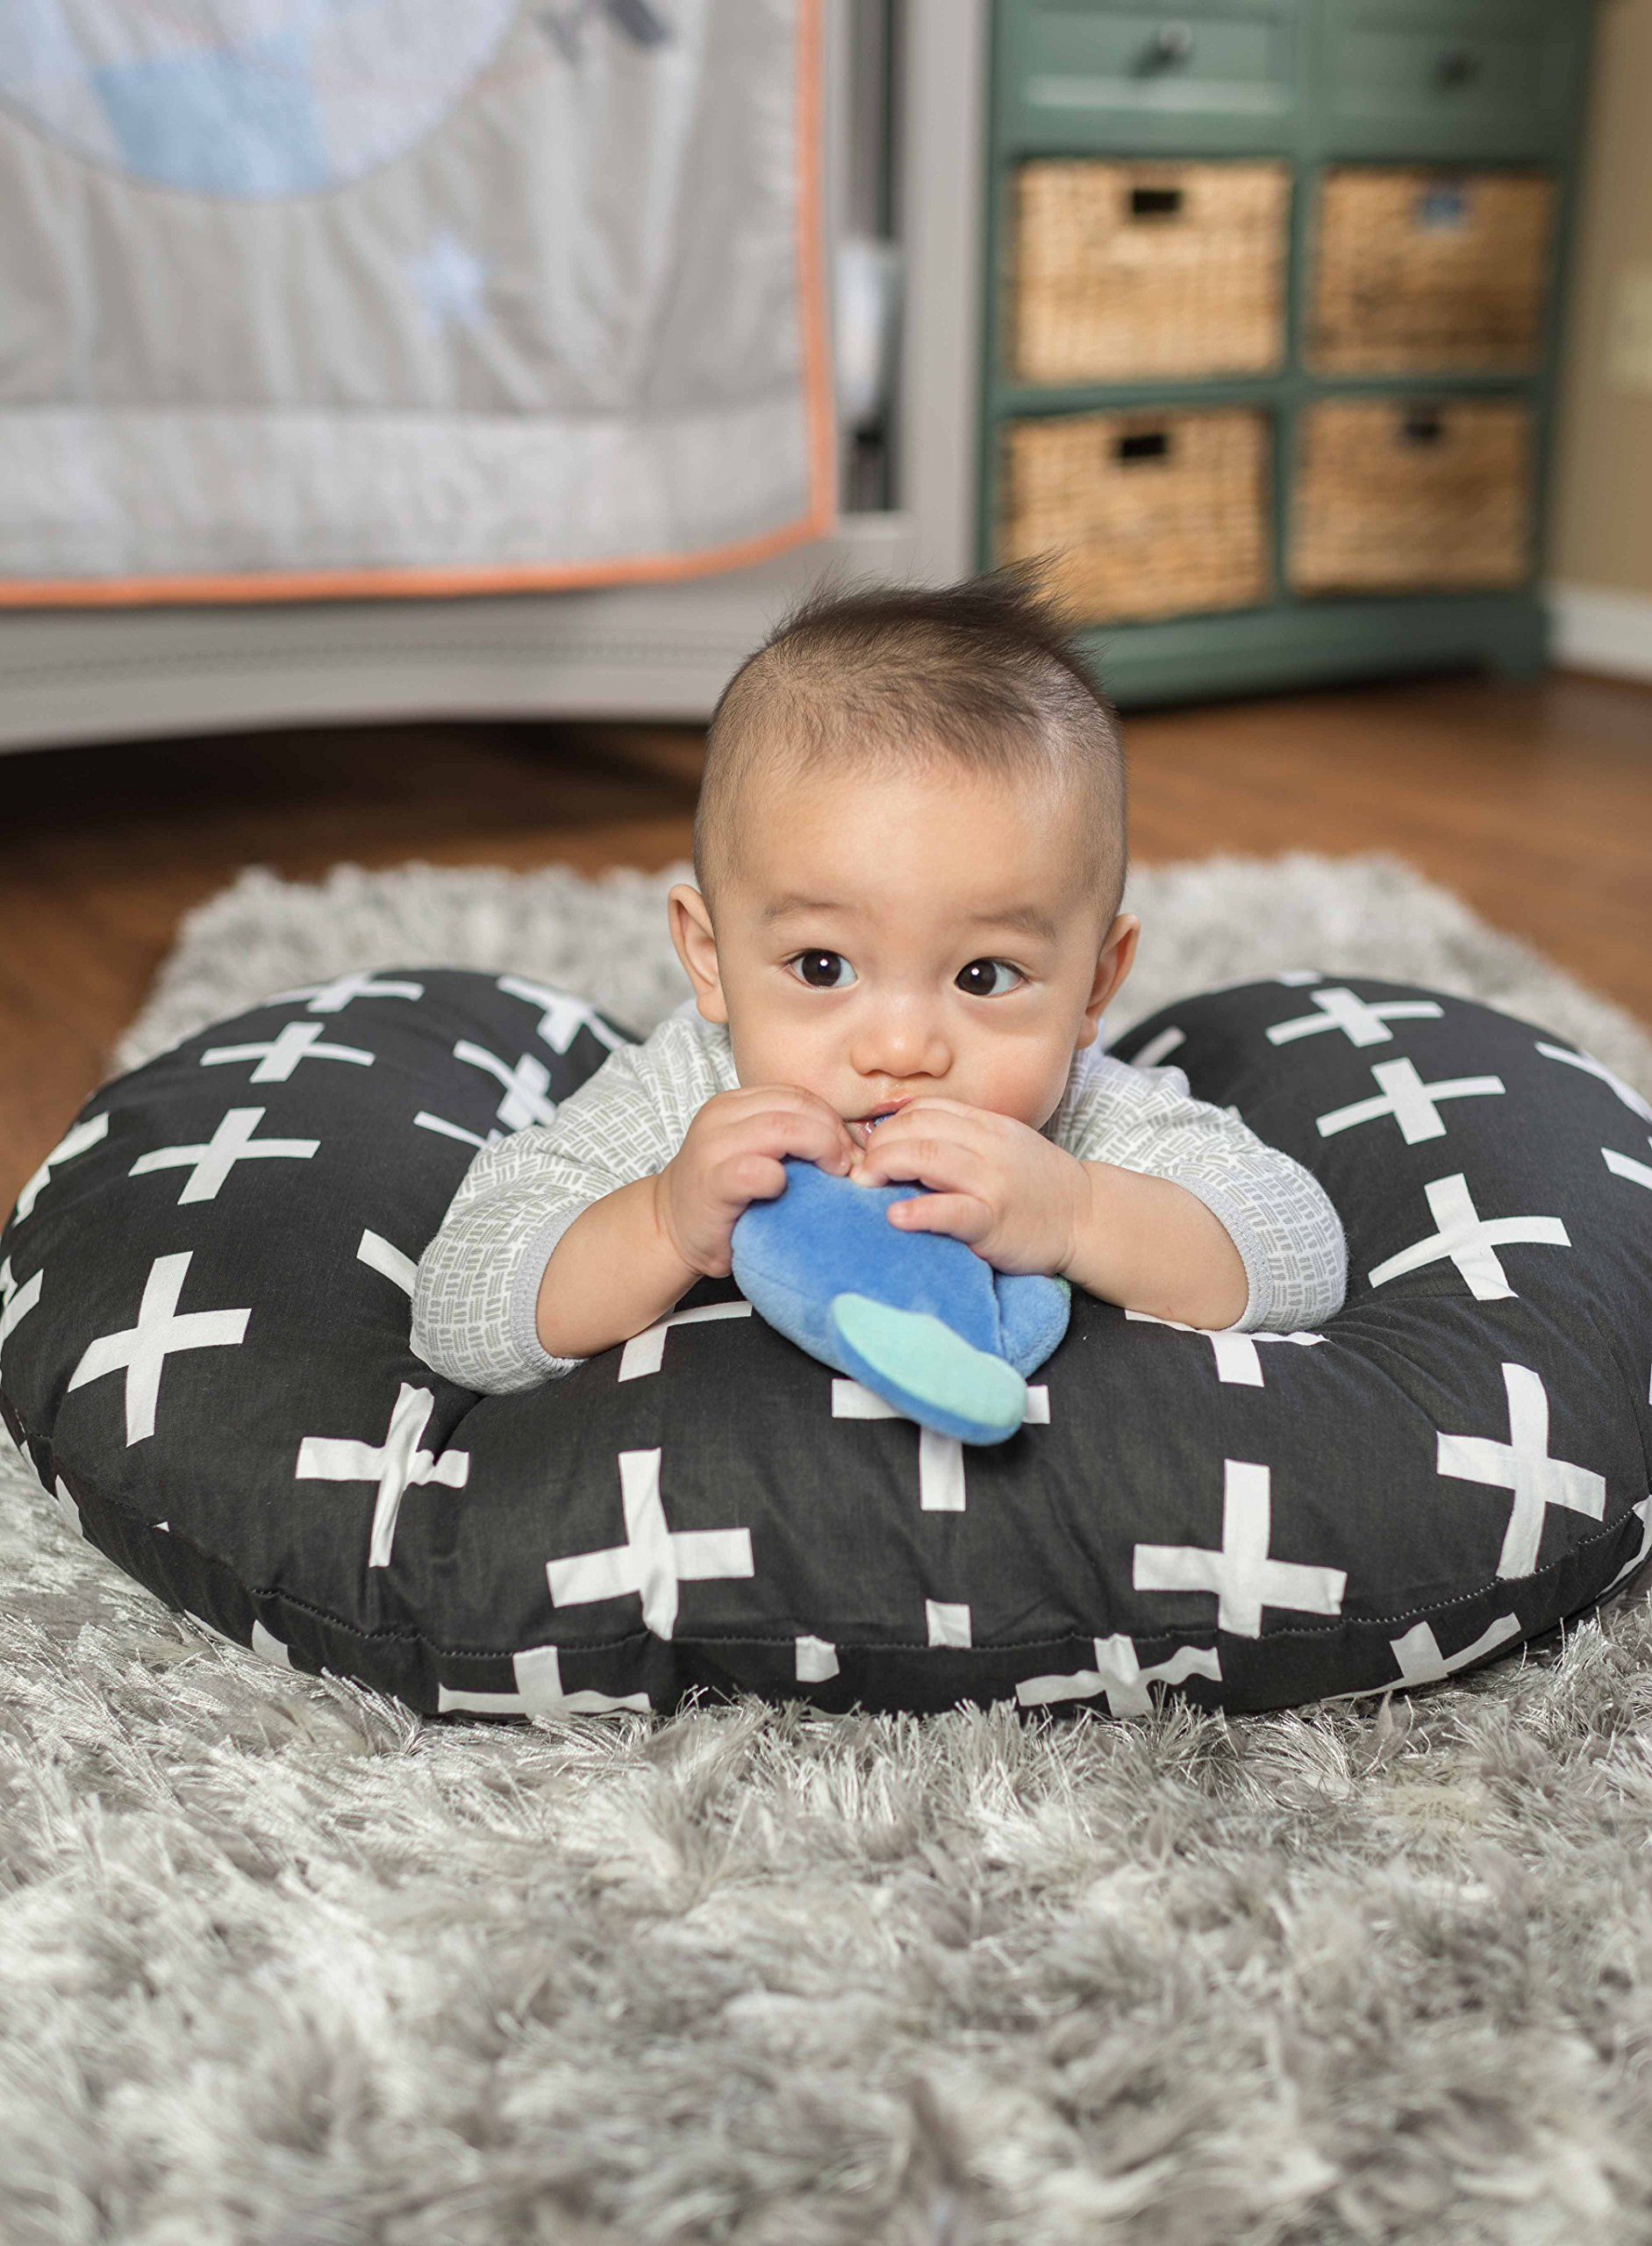 Premium Quality Nursing Pillow Cover by Mila Millie - Nordic Swiss White Cross Unisex Design Slipcover - 100% Cotton Hypoallergenic - Perfect for Breastfeeding Mothers - Baby Shower Gift by Mila Millie (Image #6)